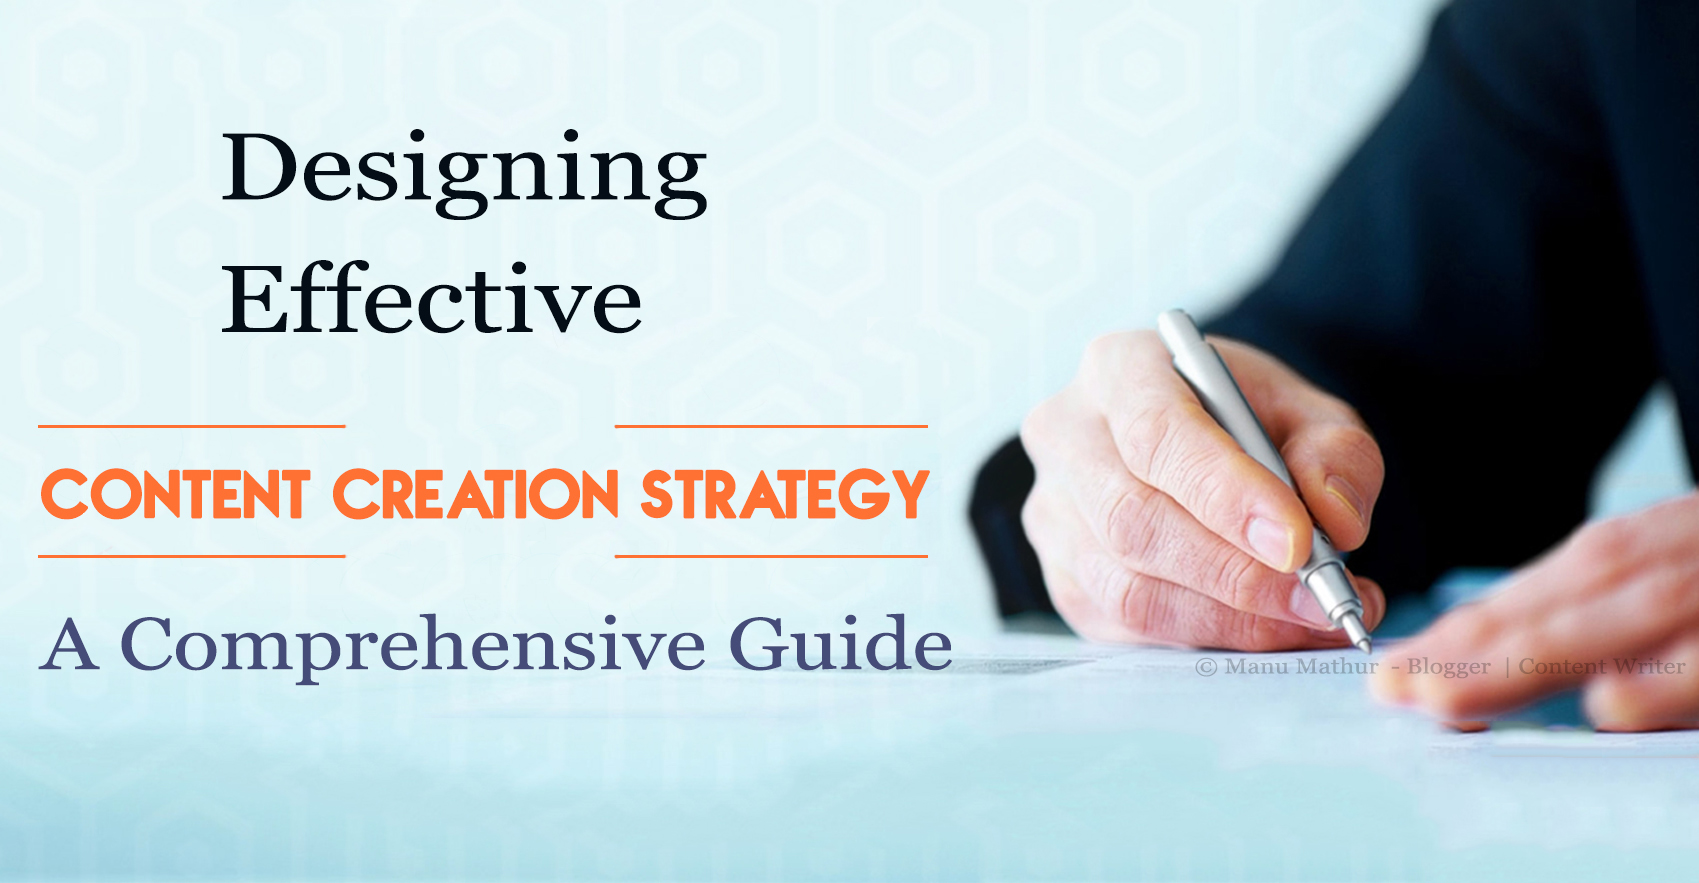 Content Creation Strategy- A Comprehensive Guide